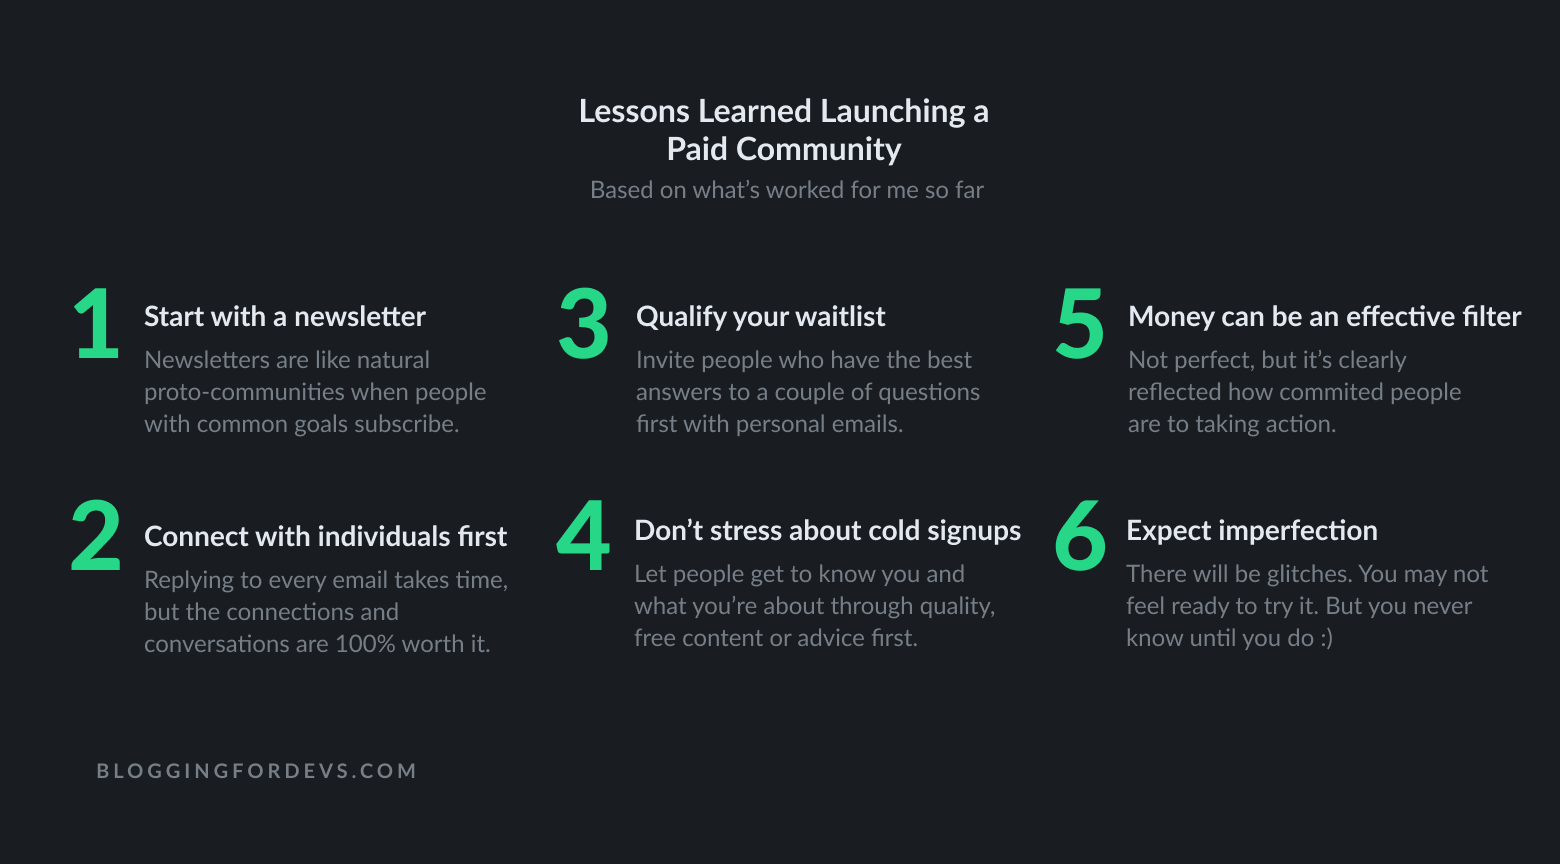 Paid Community Launch Learnings